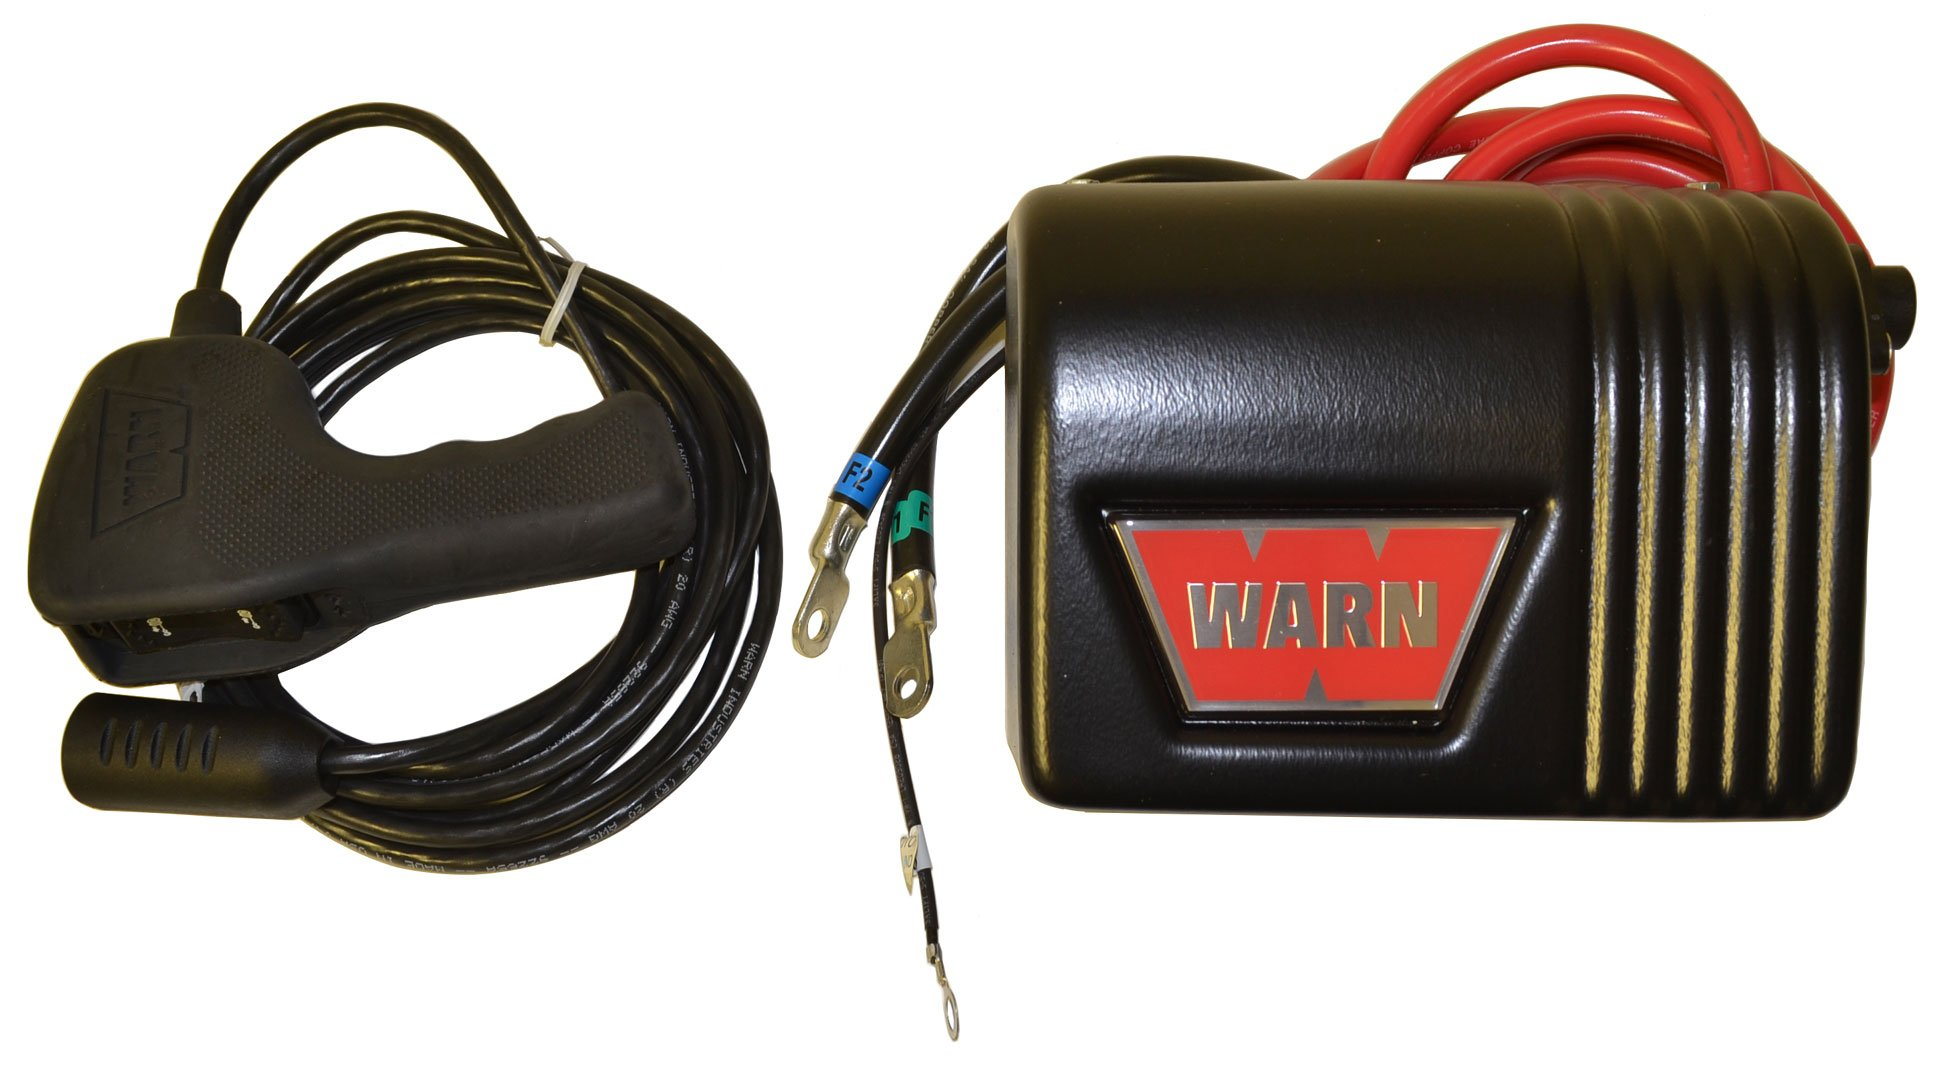 WARN 38845 12-Volt Control Pack - Pack of 1 by WARN